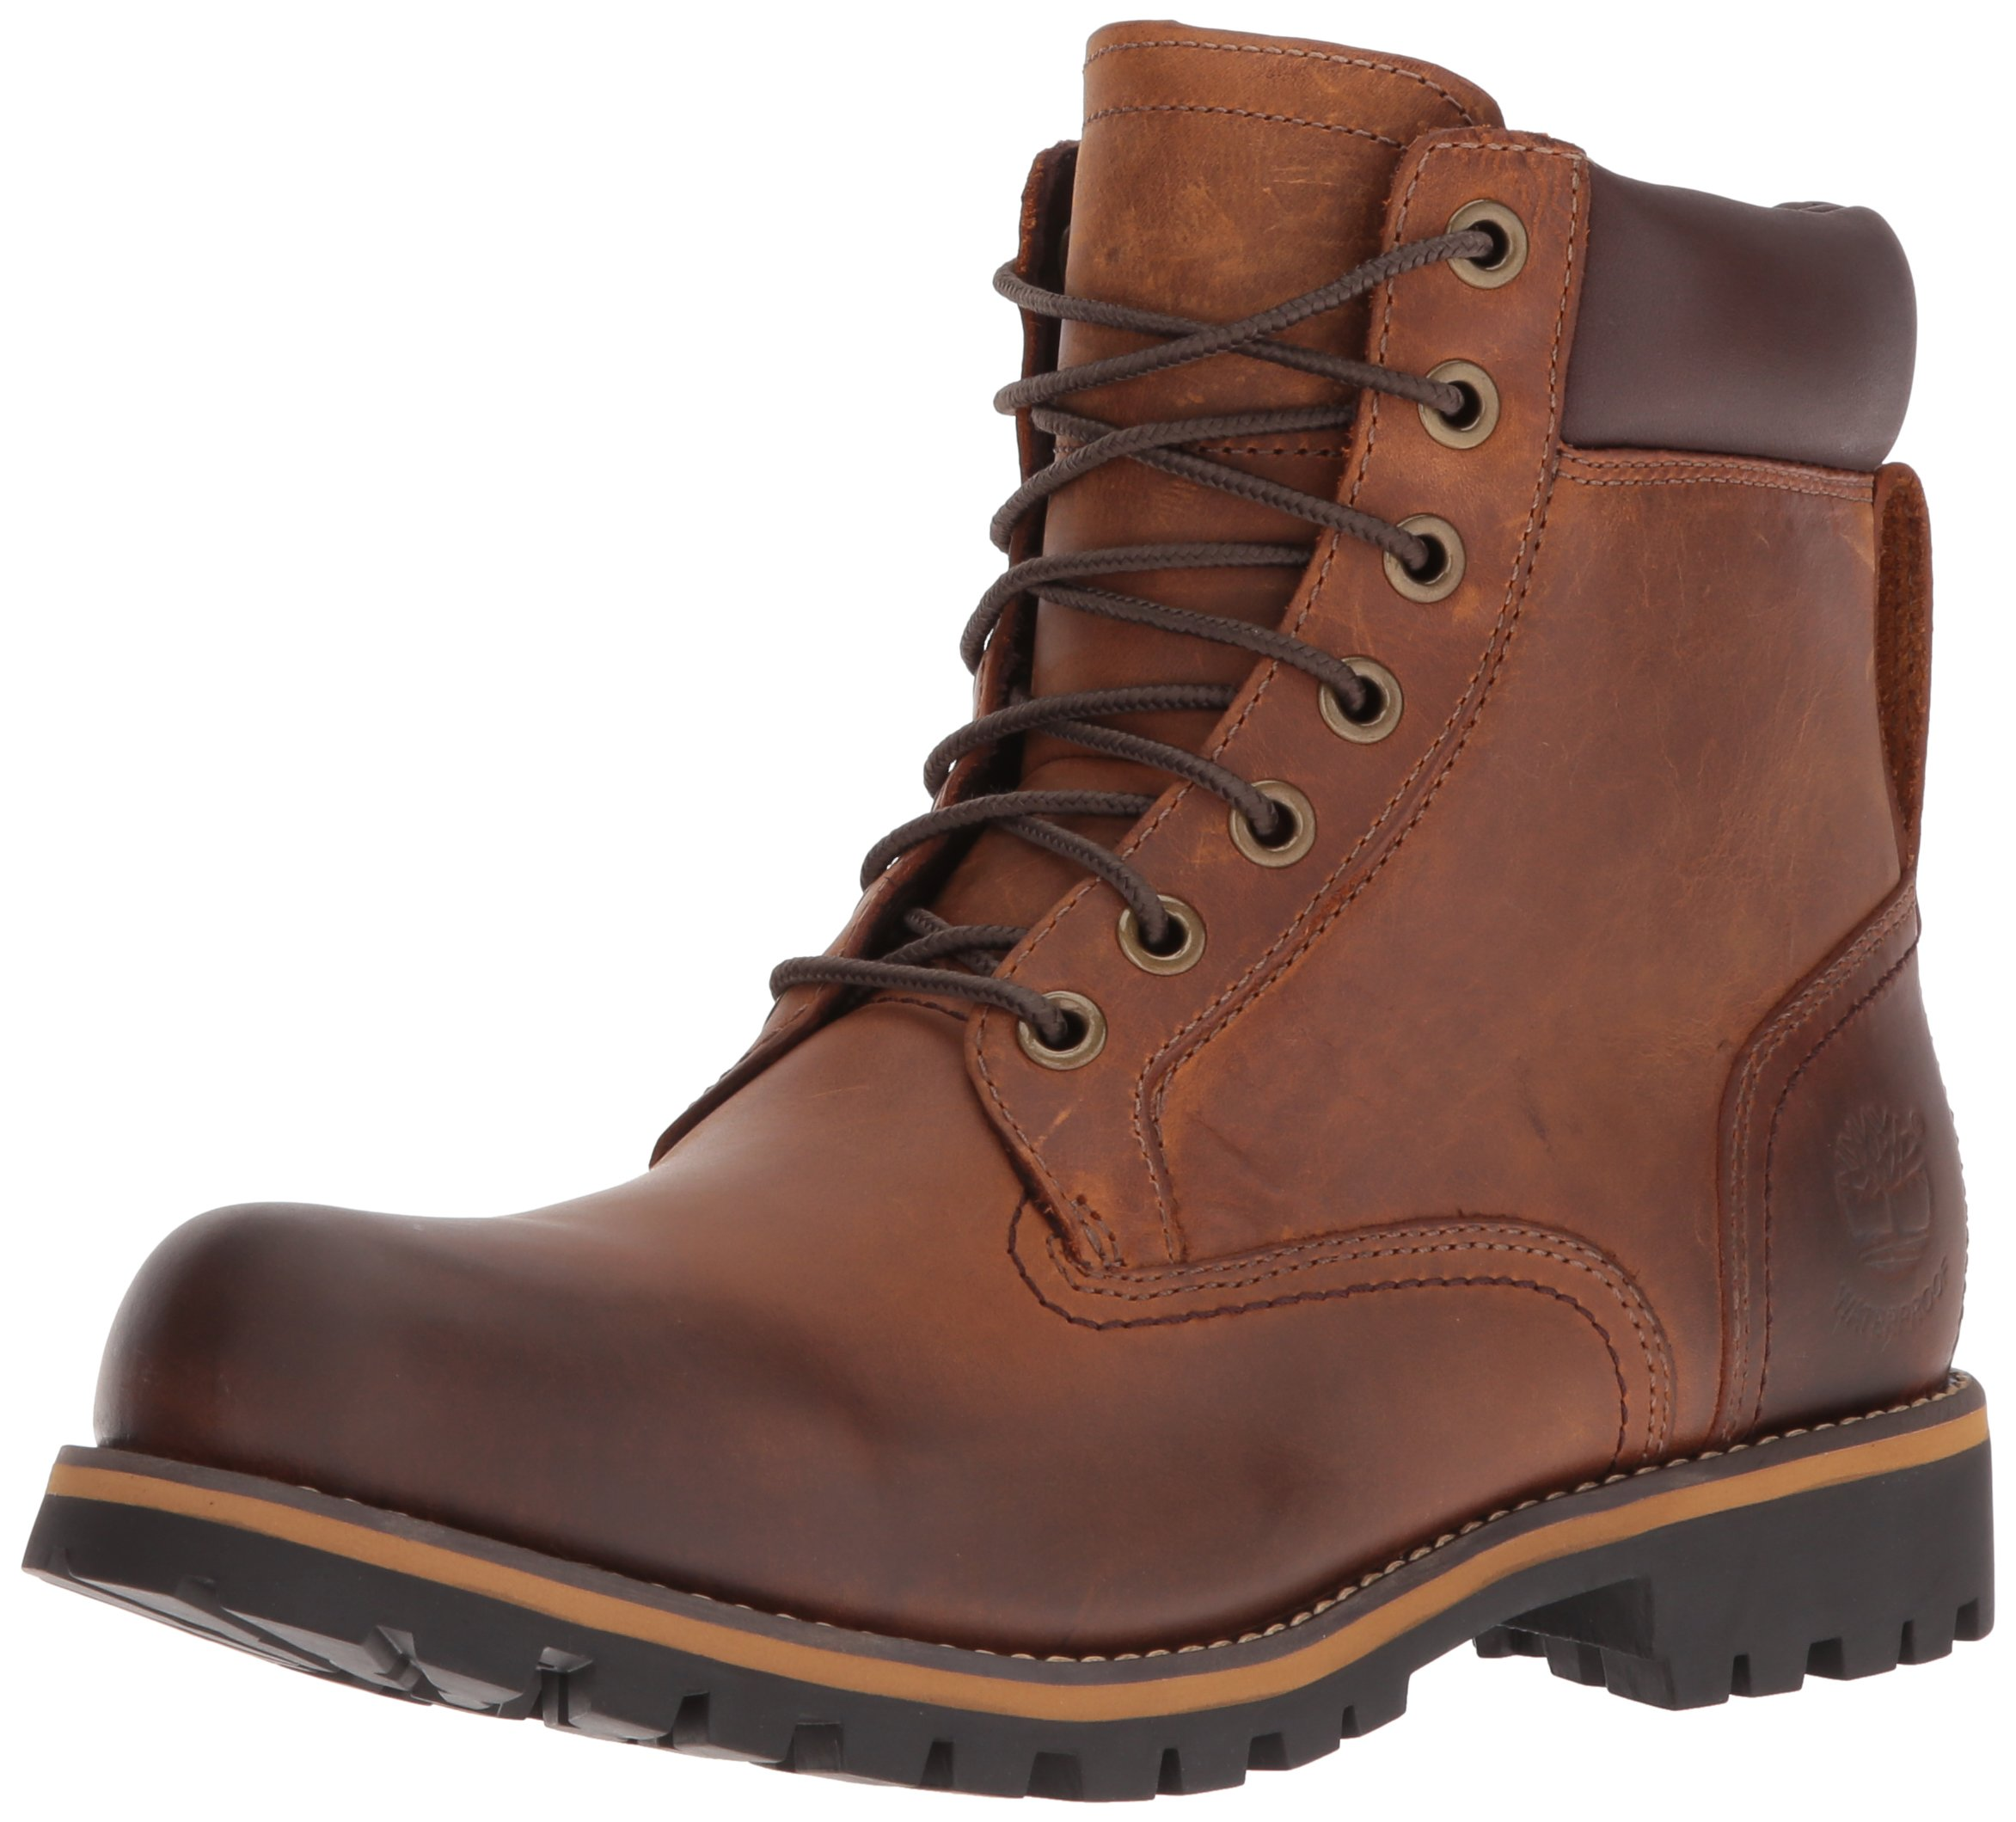 Timberland Men's Earthkeepers Rugged Boot, Red Brown, 10 M US